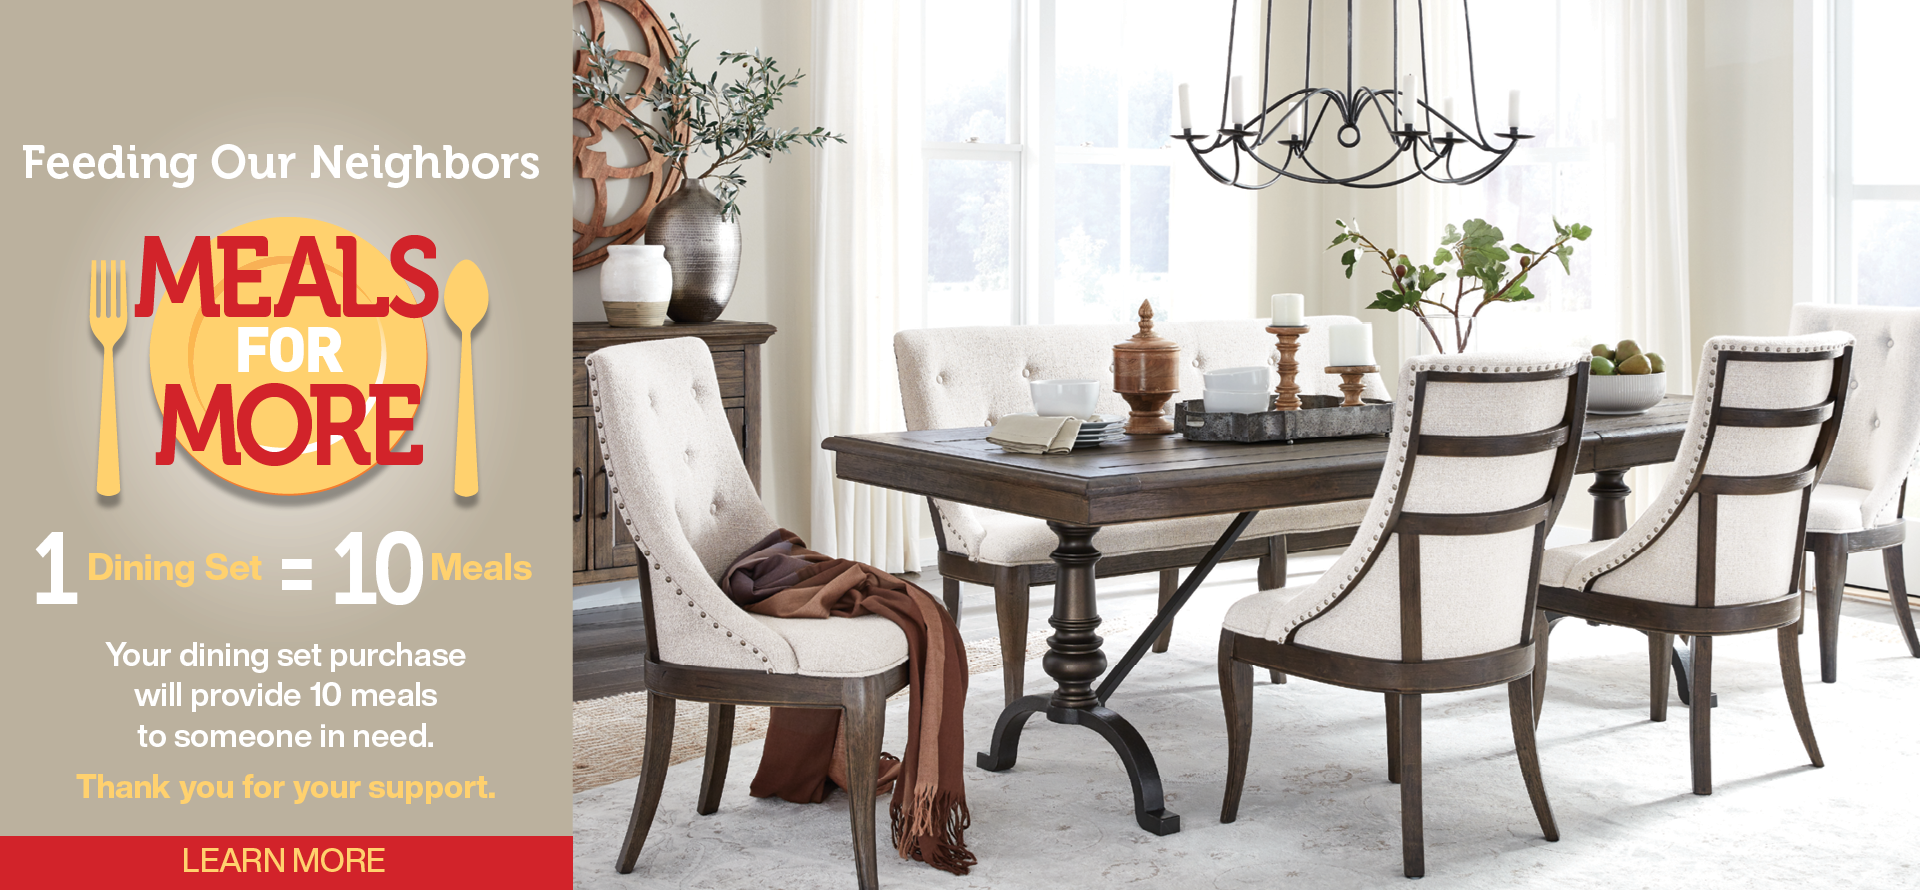 We'll donate 10 meals for every dining set, table and 4 chairs purchased. Learn more.